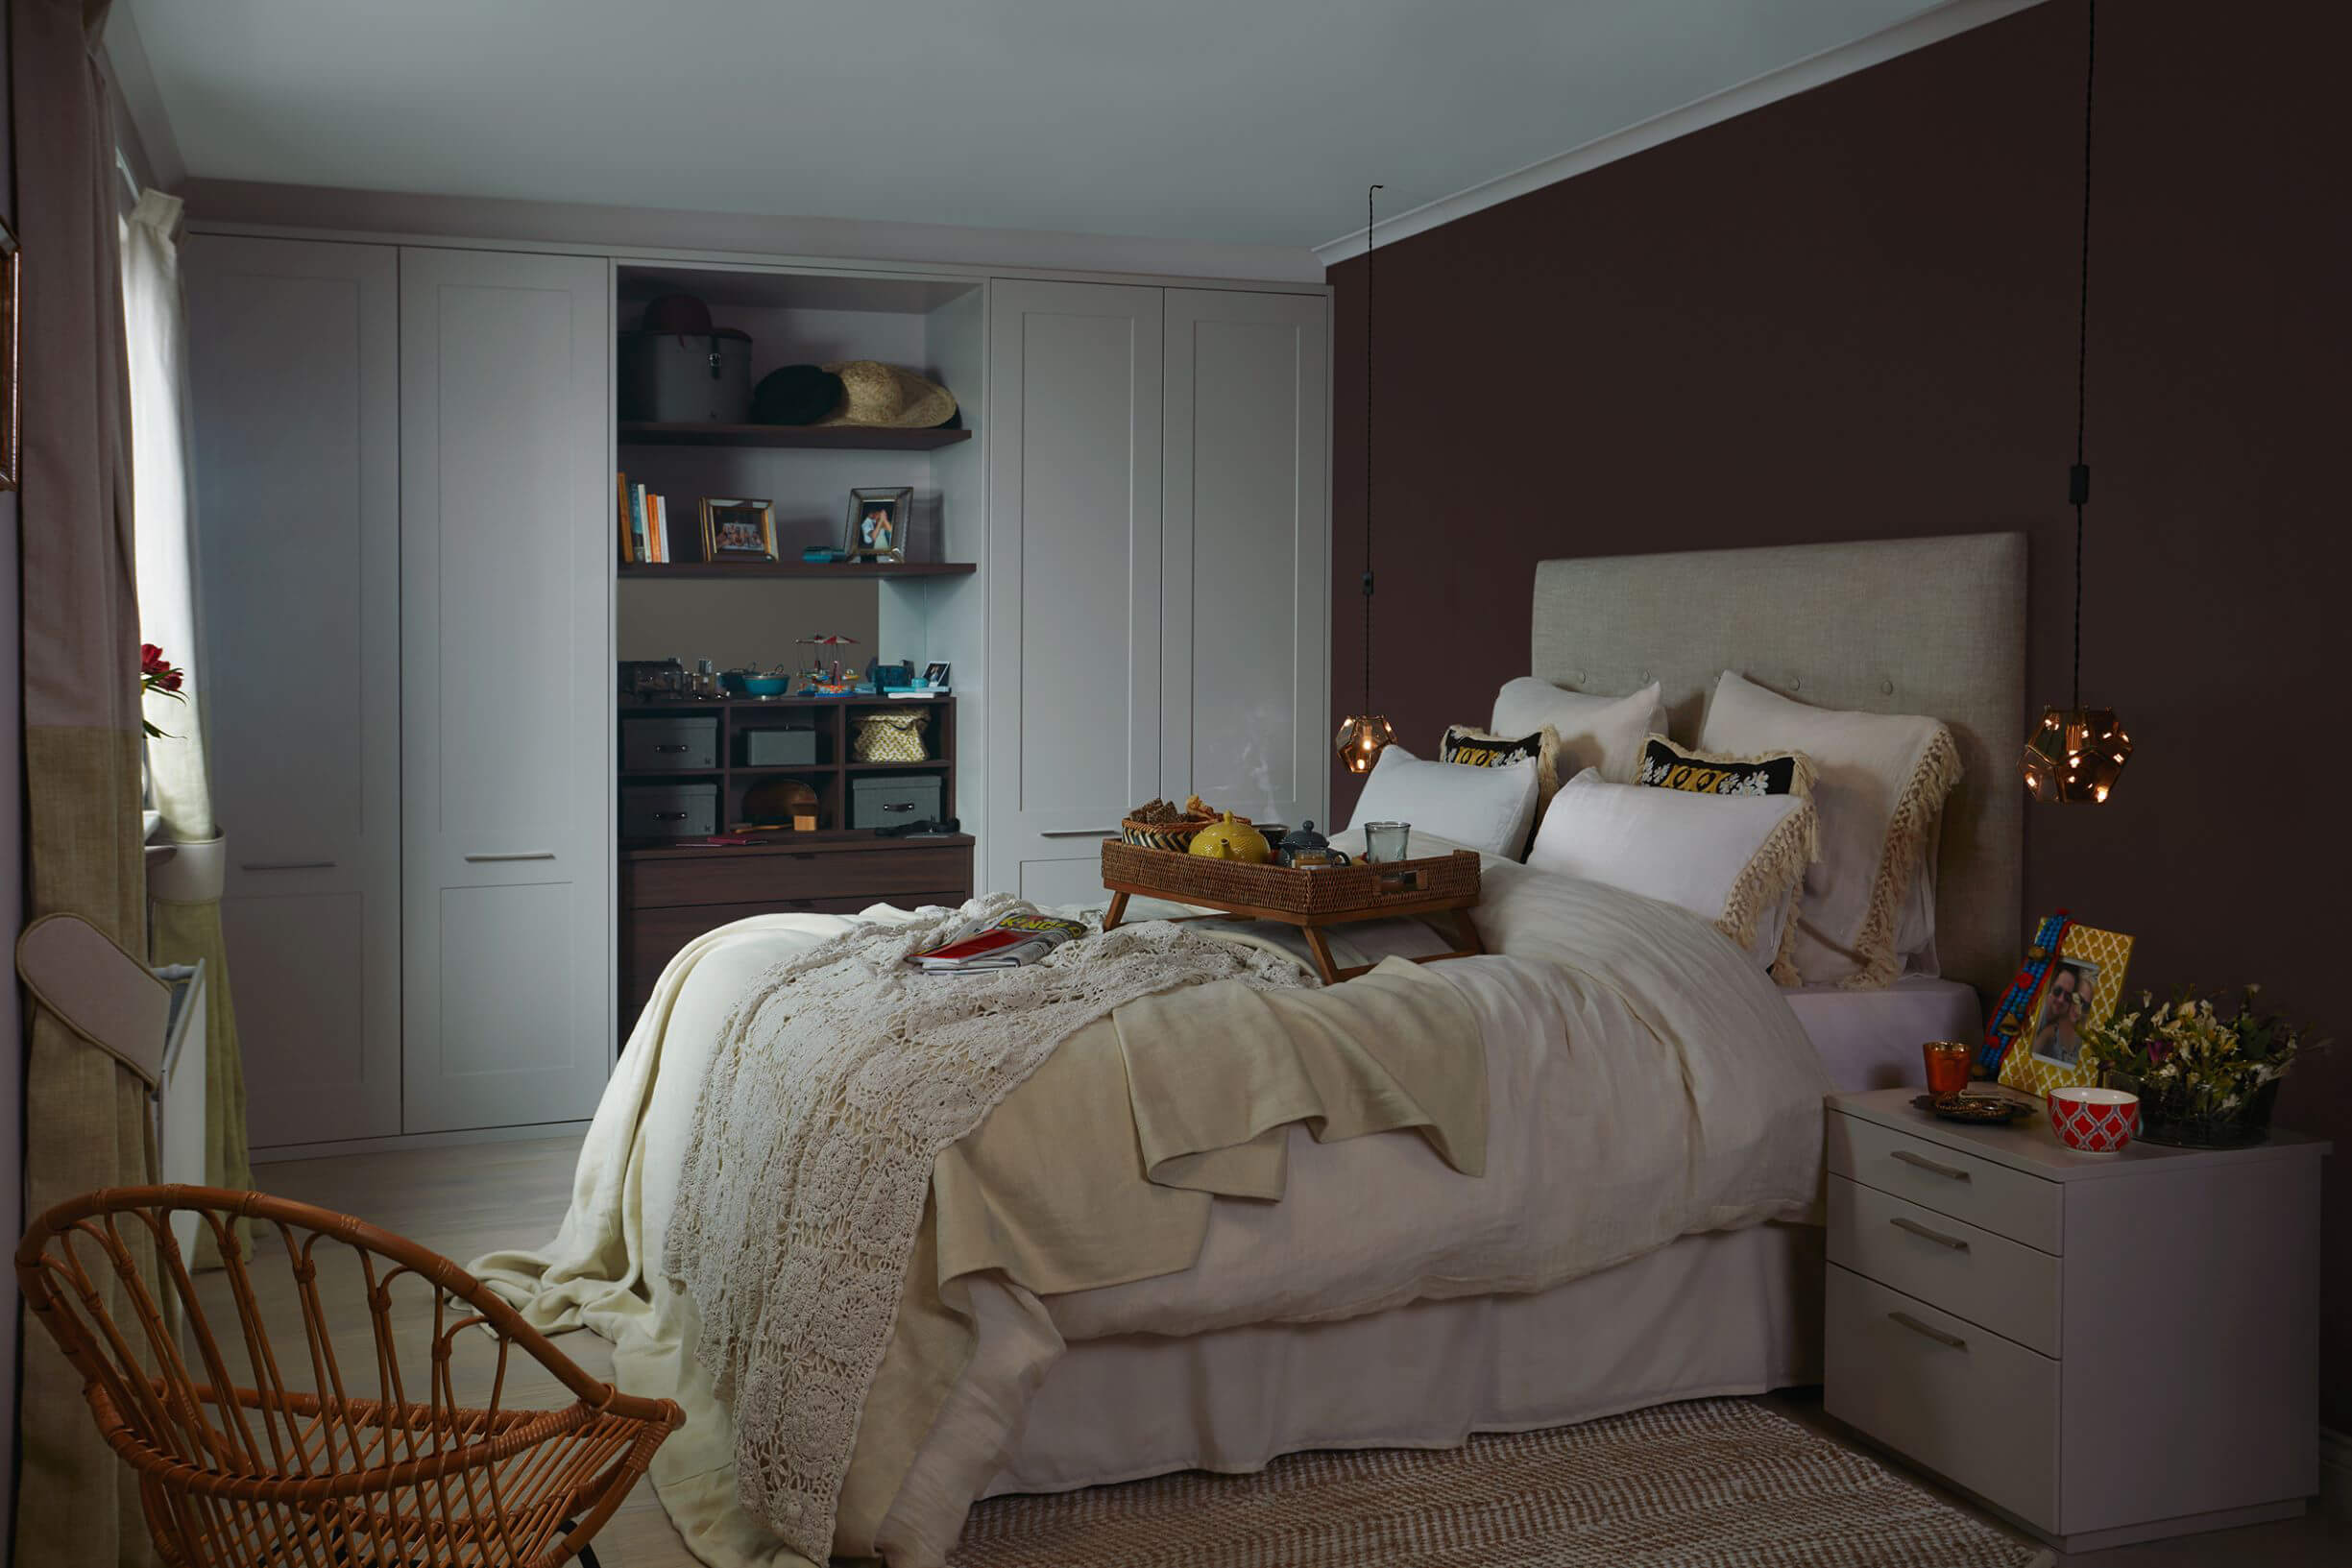 Kindred-Bedrooms-Esker-Gallery4